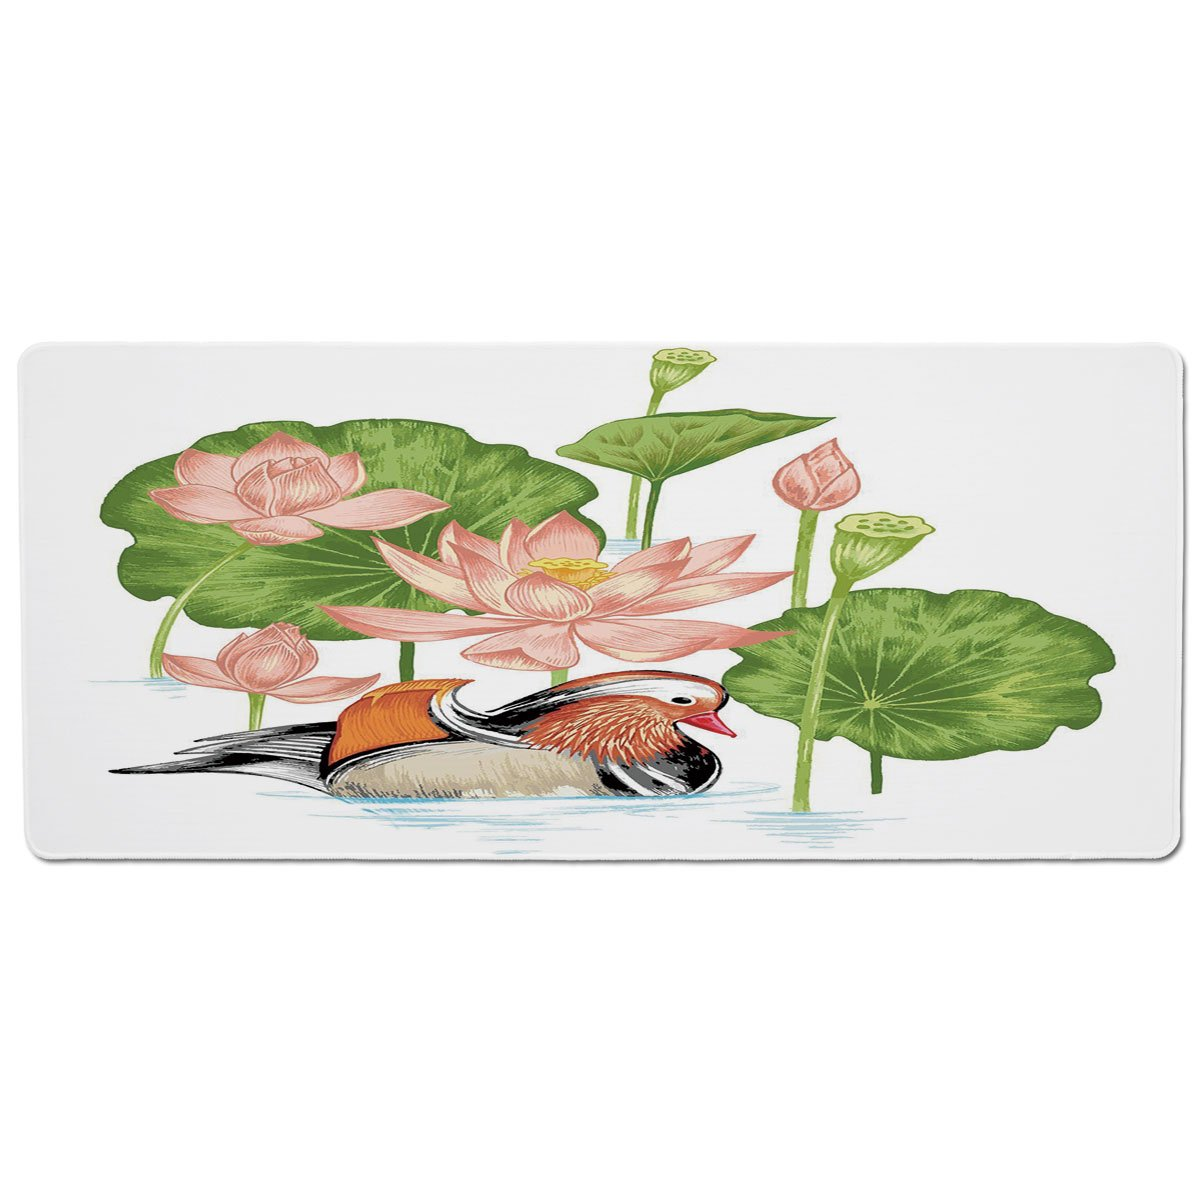 35.4\ Pet Mat for Food and Water,Duck,Baby Mandarin Duckling in Pond with Lotus Lily Flowers Water Painting Style,White Green and Pink,Rectangle Non-Slip Rubber Mat for Dogs and Cats